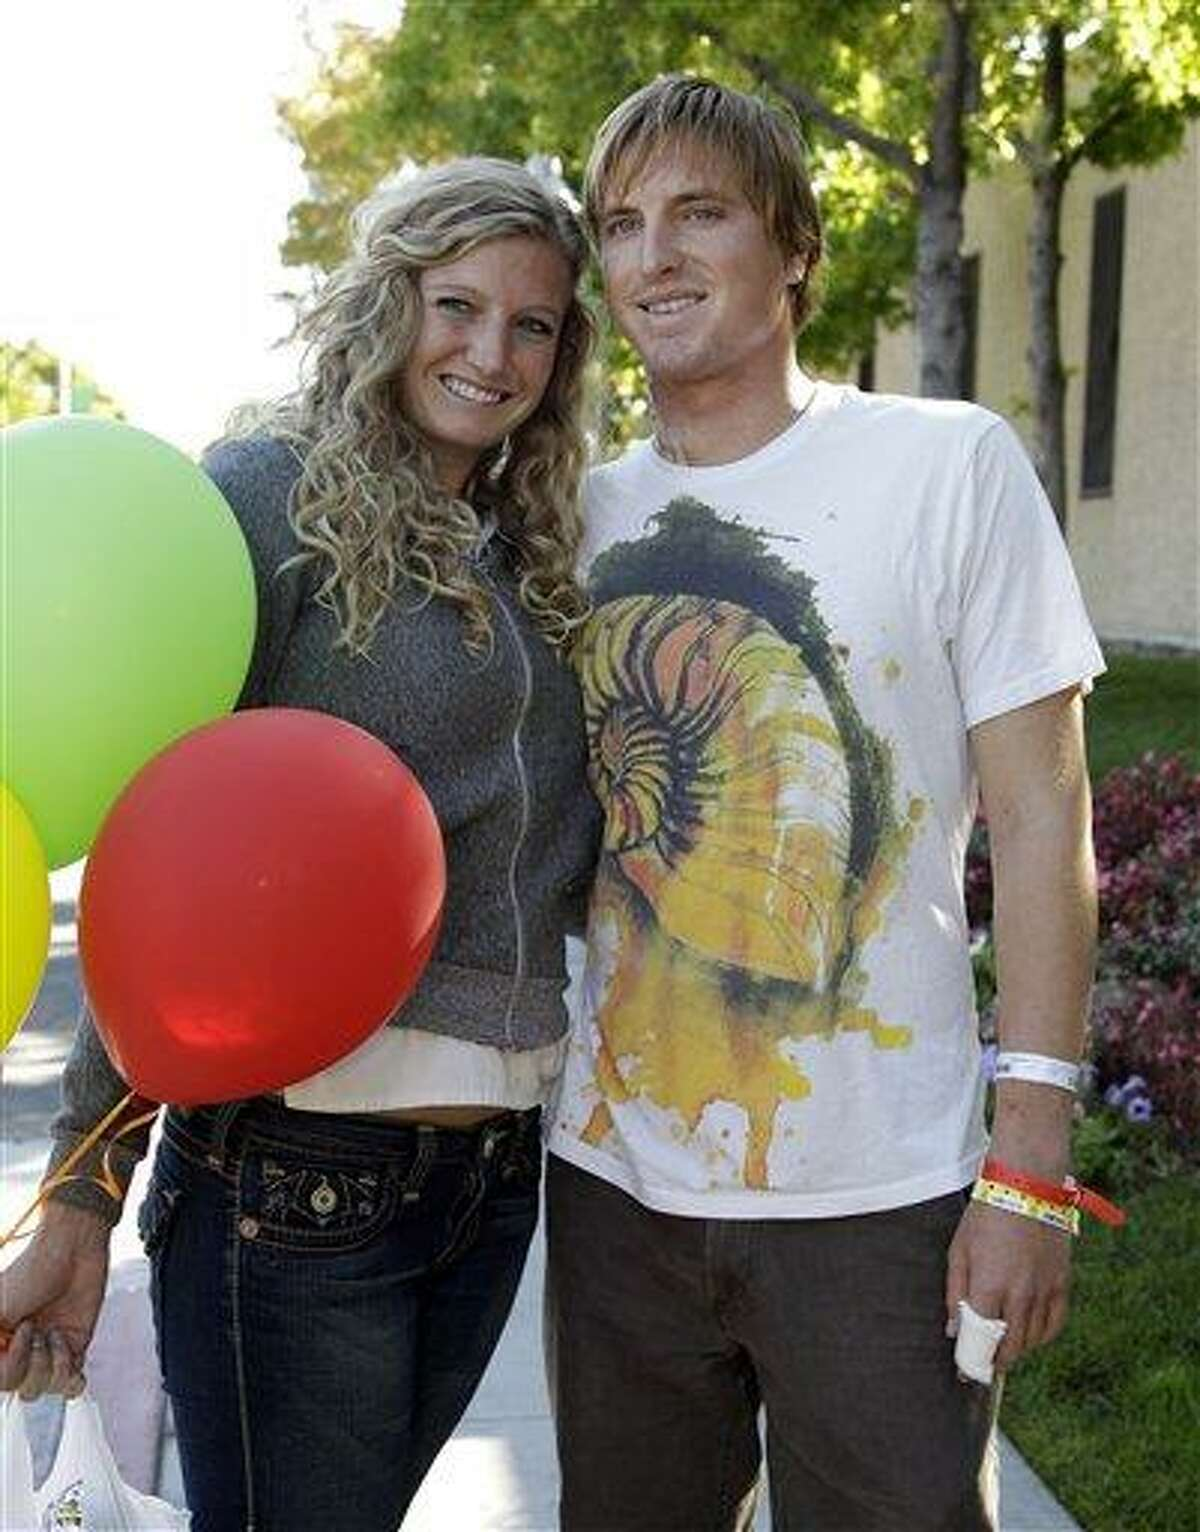 Eric Tarantino leaves a San Jose, Calif., hospital with his girlfriend Krista Herr, Monday, Oct. 31, 2011, after he was attacked by a shark at Marina State Beach on Saturday. Tarantino, 27, was bitten on the neck, arm and hands. (AP Photo/Paul Sakuma)